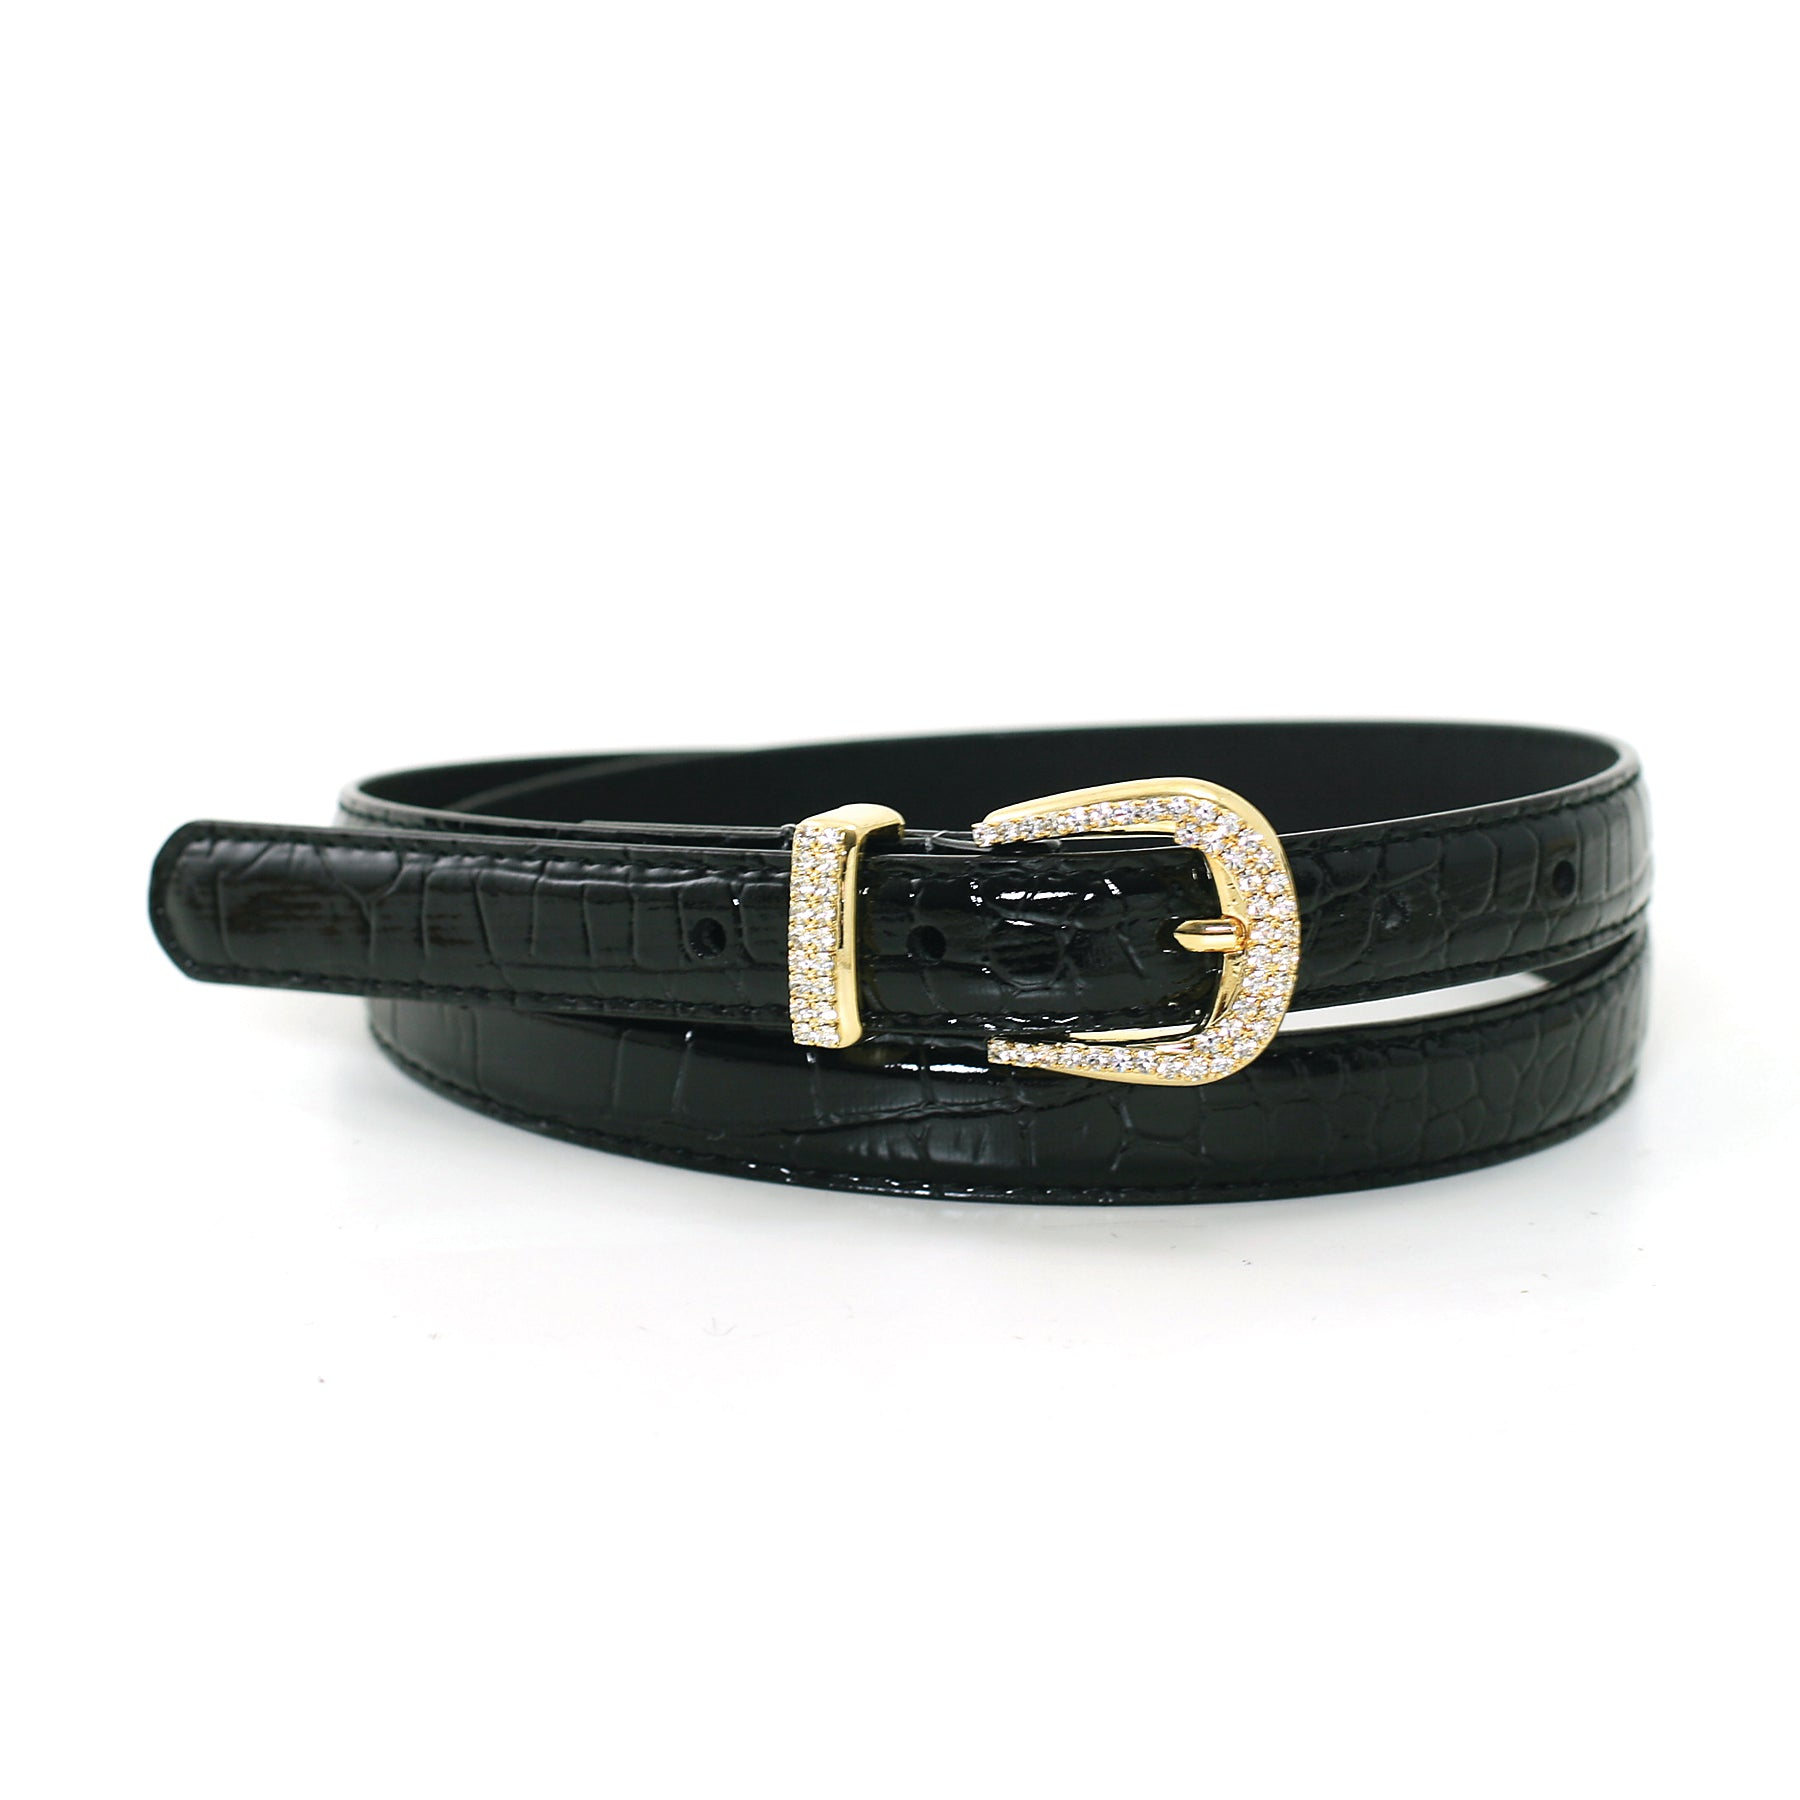 Women's Classic Fashion Leatherette Belt front view